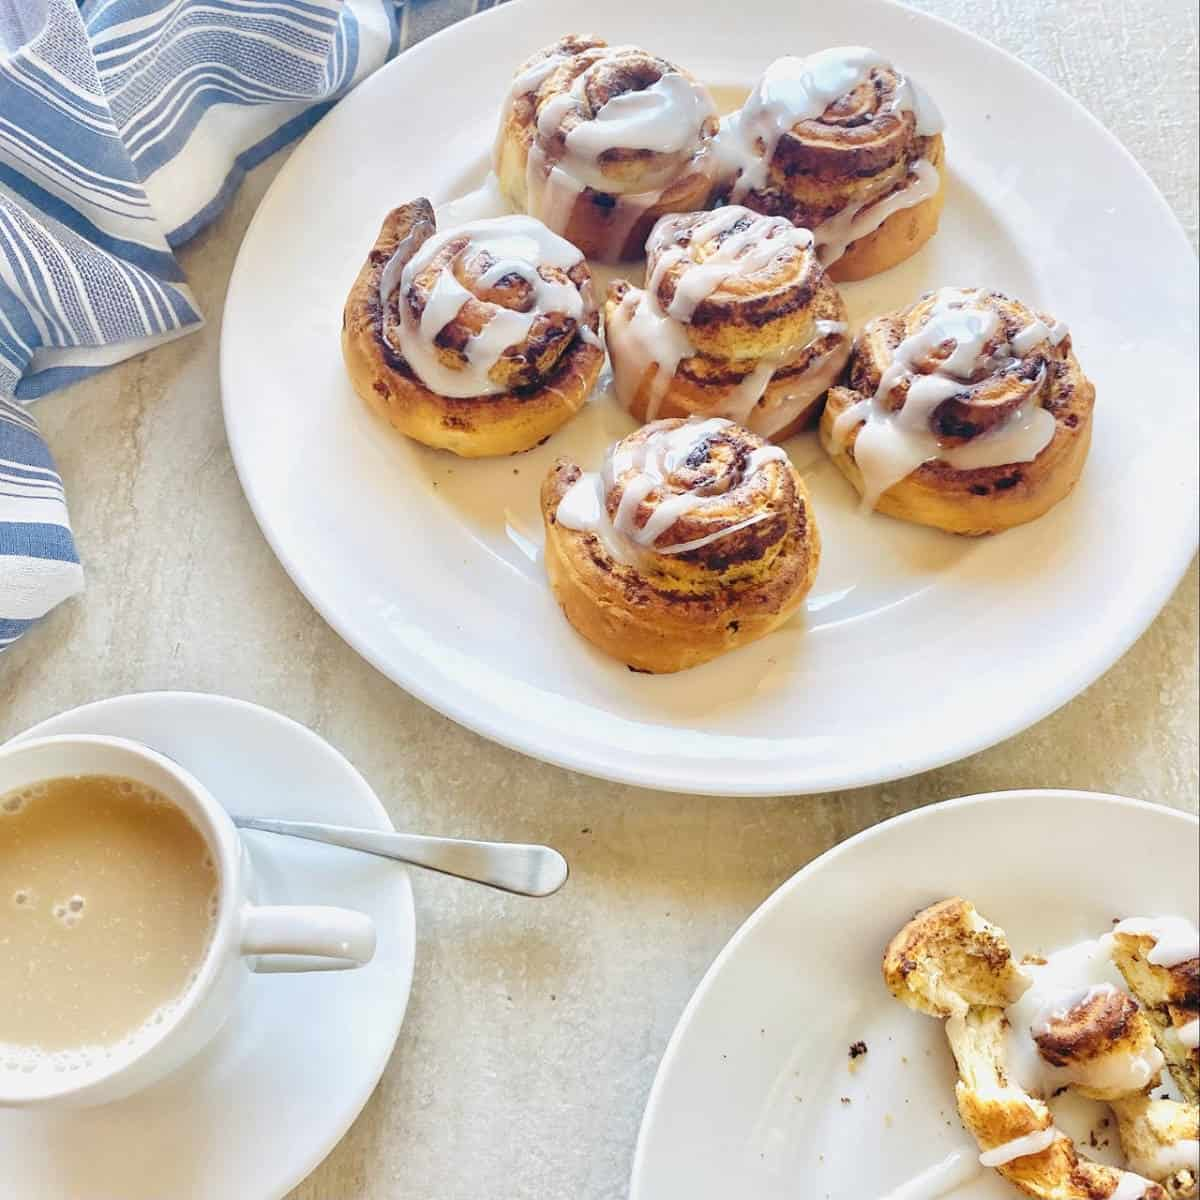 air fryer cinnamon rolls on a plate next to coffee and a napkin